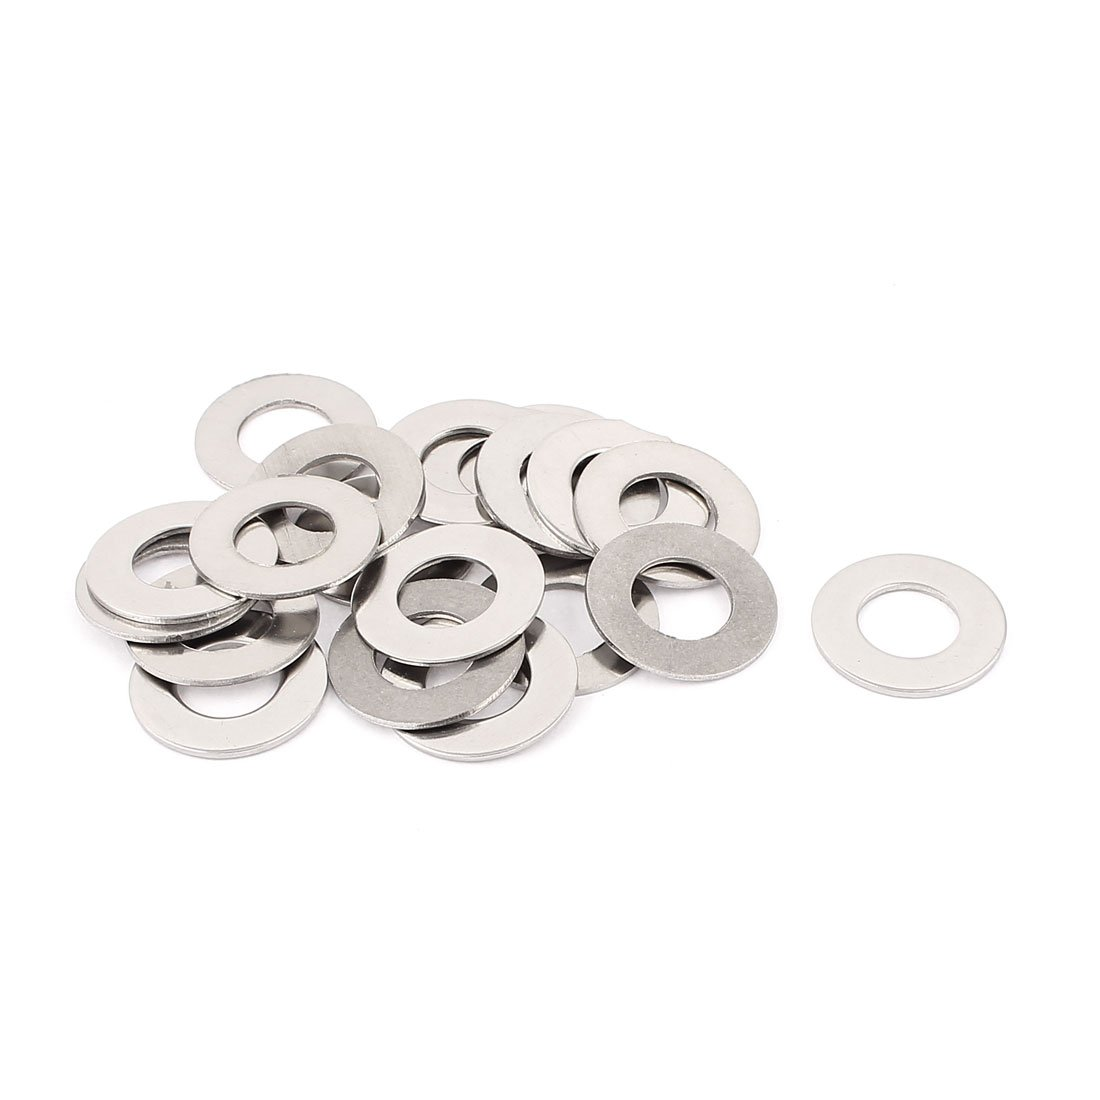 uxcell 20pcs 304 Stainless Steel M12 Thin Flat Washers Silver Tone a15090700ux0177